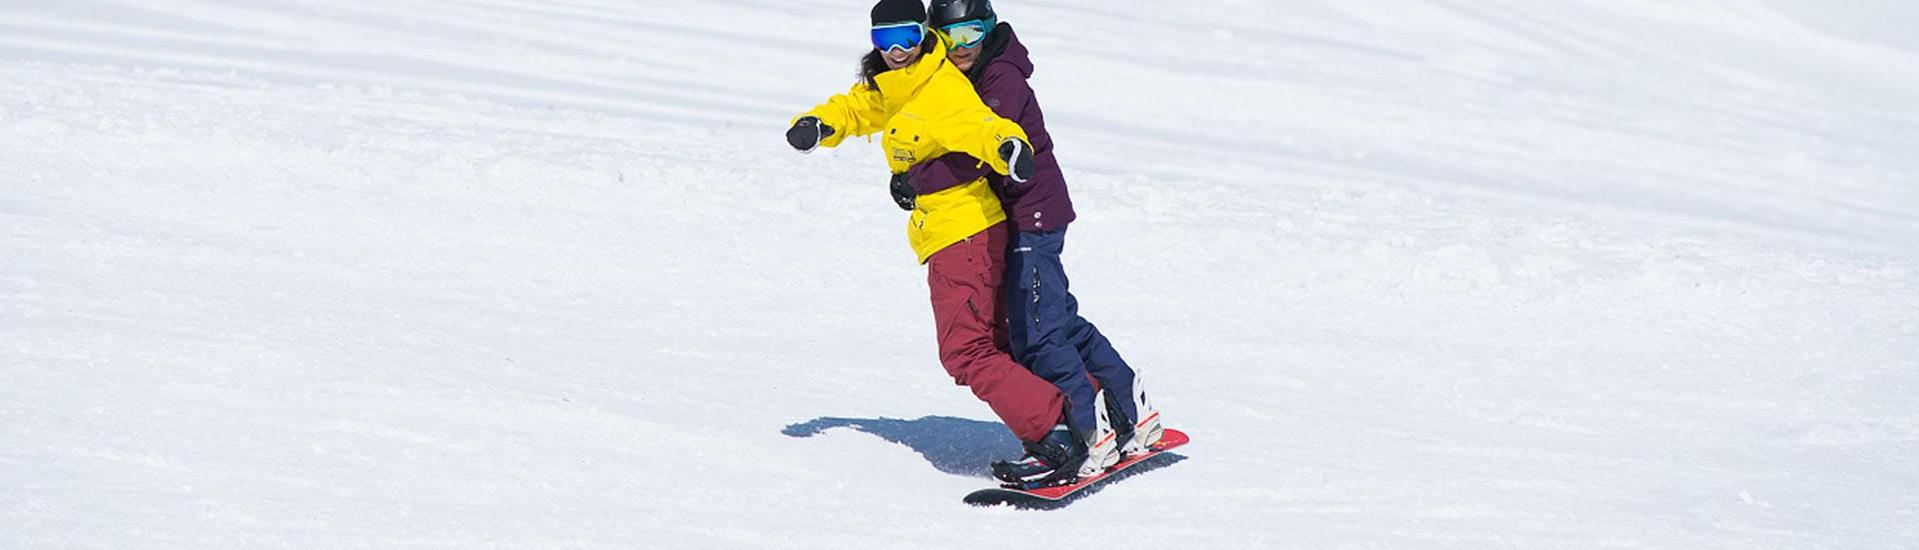 Snowboard Instructor Private - Tandemsnowboard